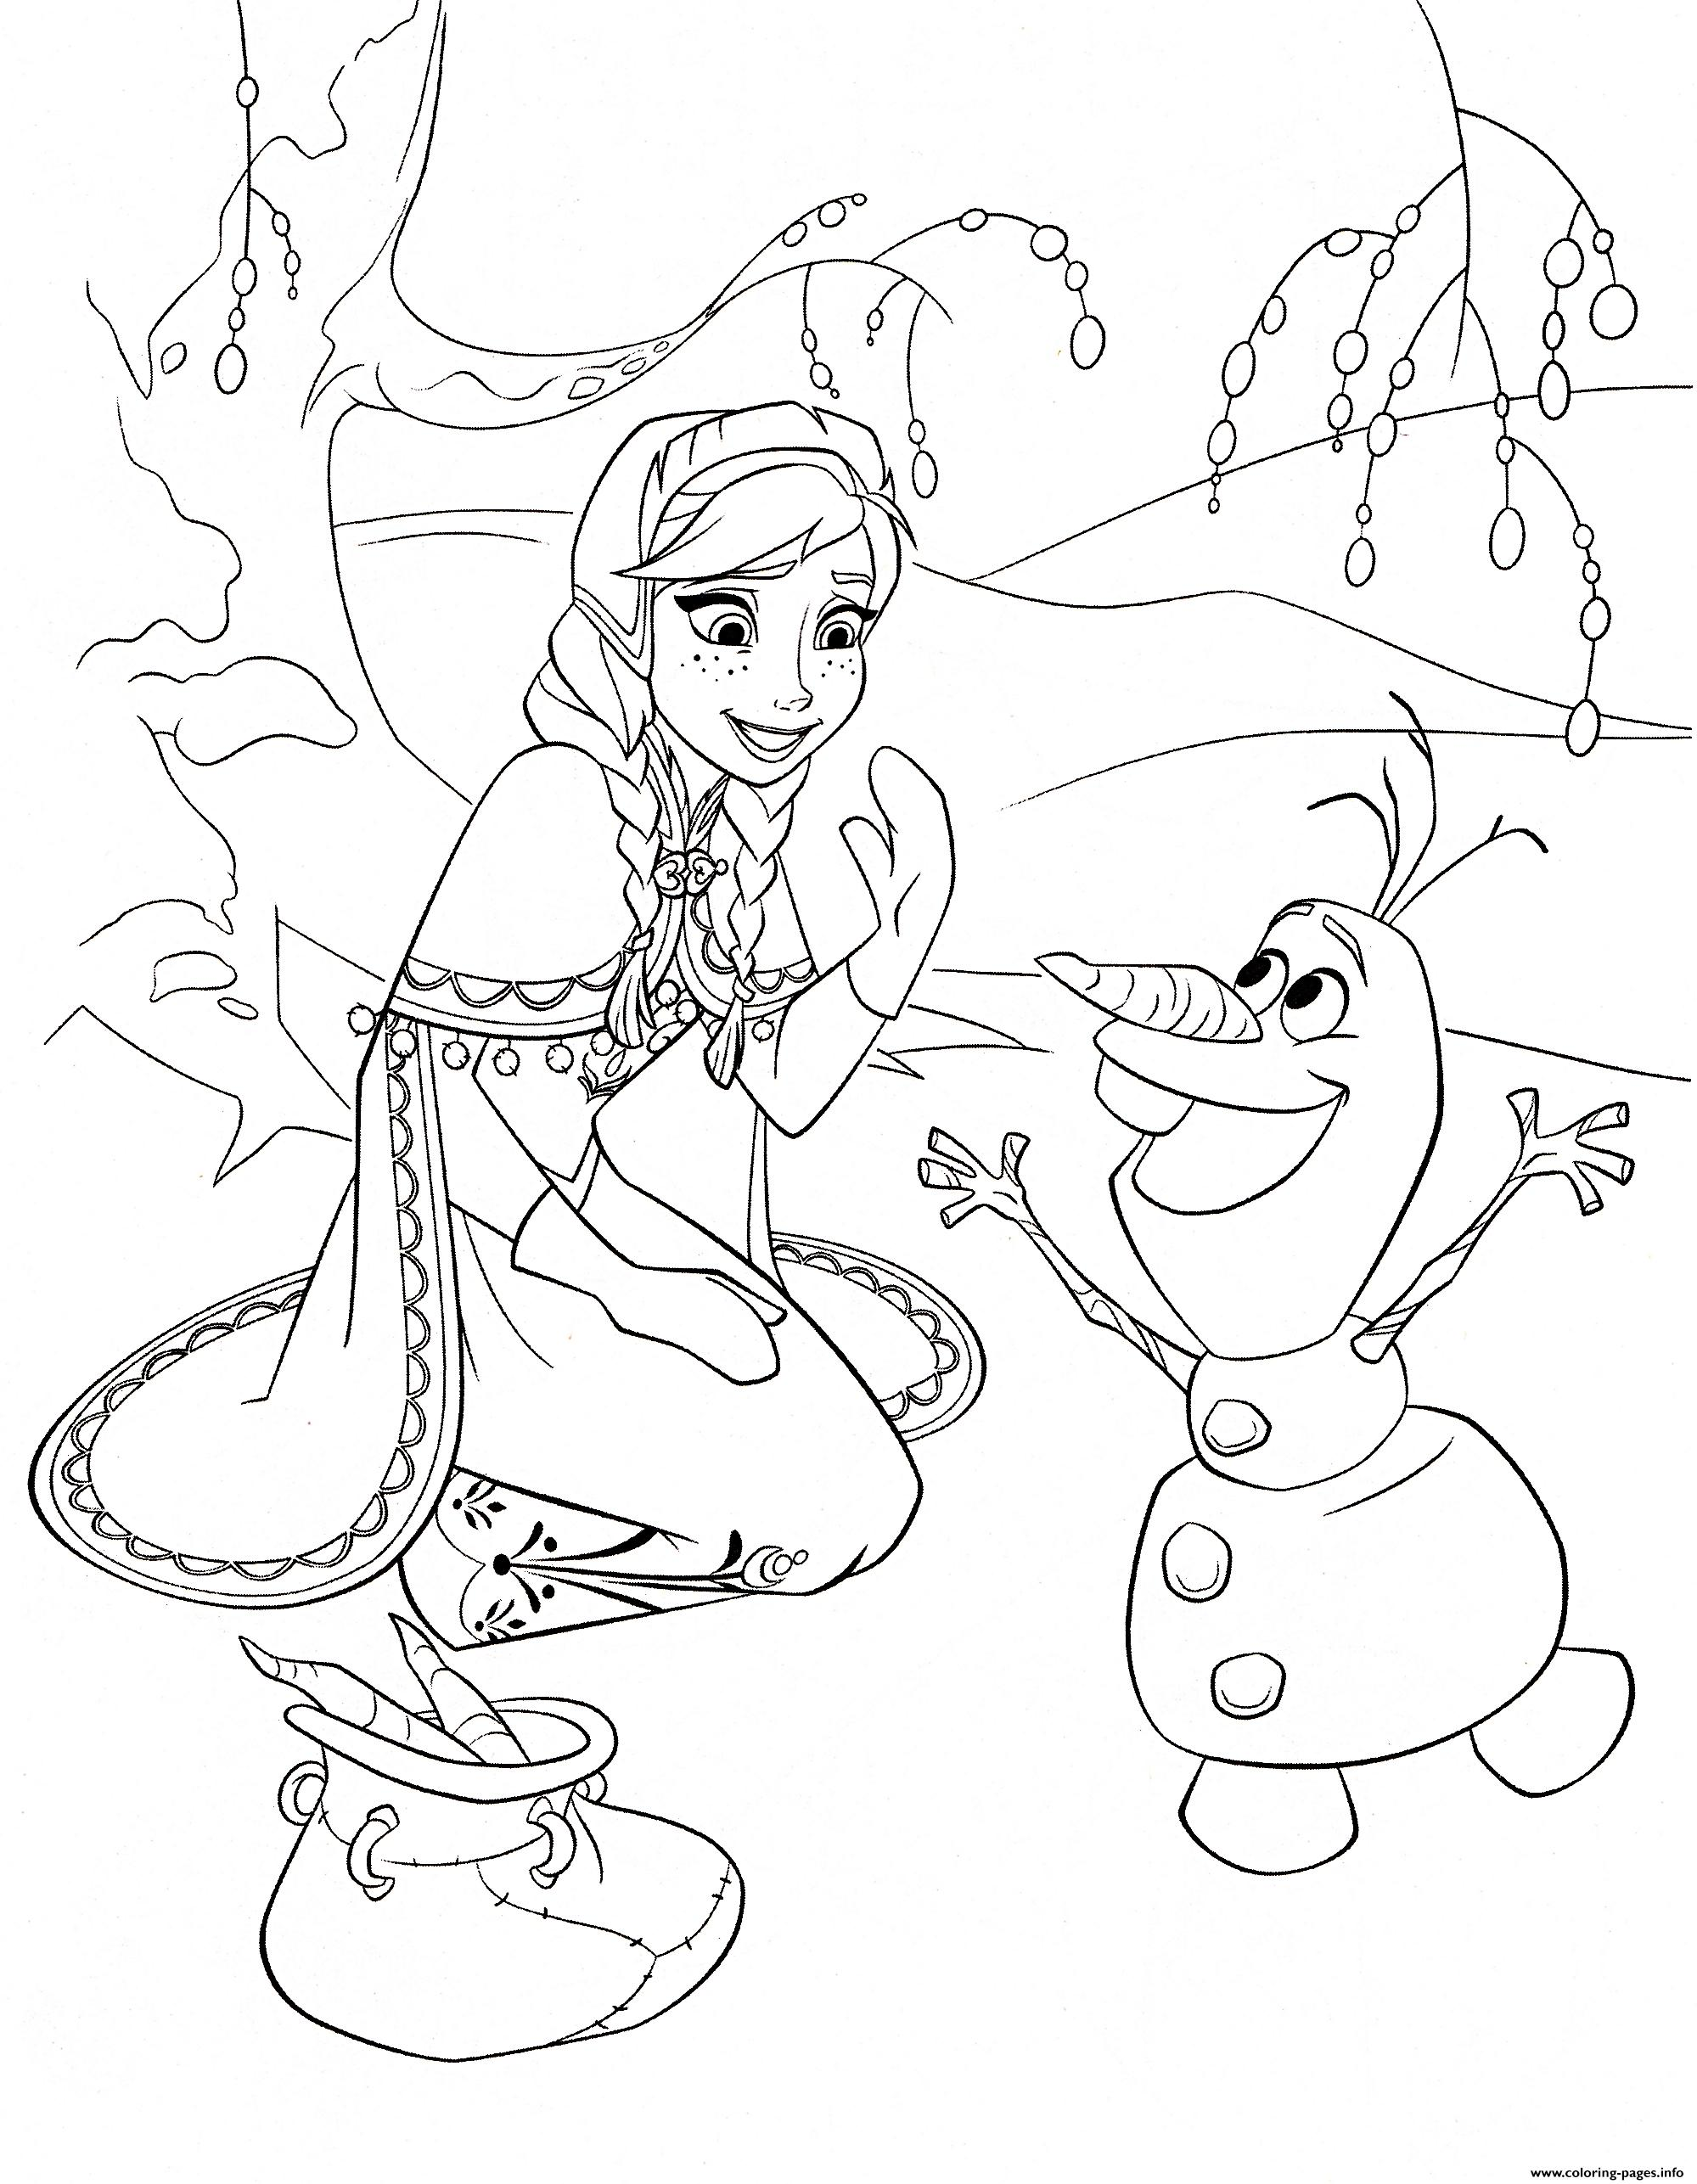 Elsa And Olaf Frozen Disney Coloring Pages